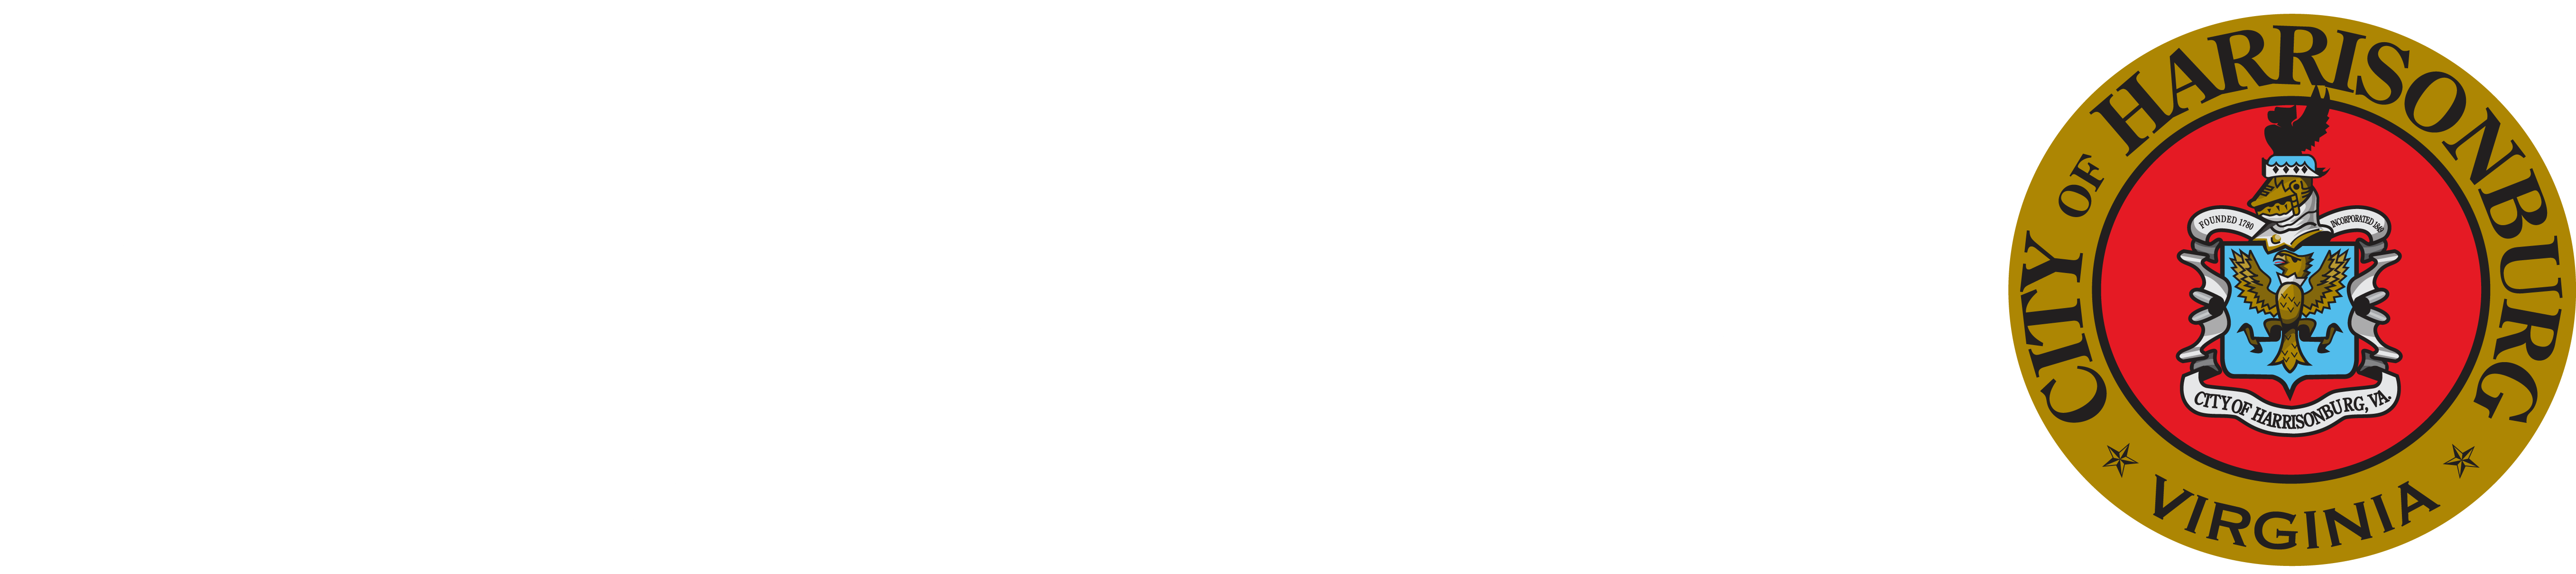 Harrisonburg Economic Development Mobile Logo